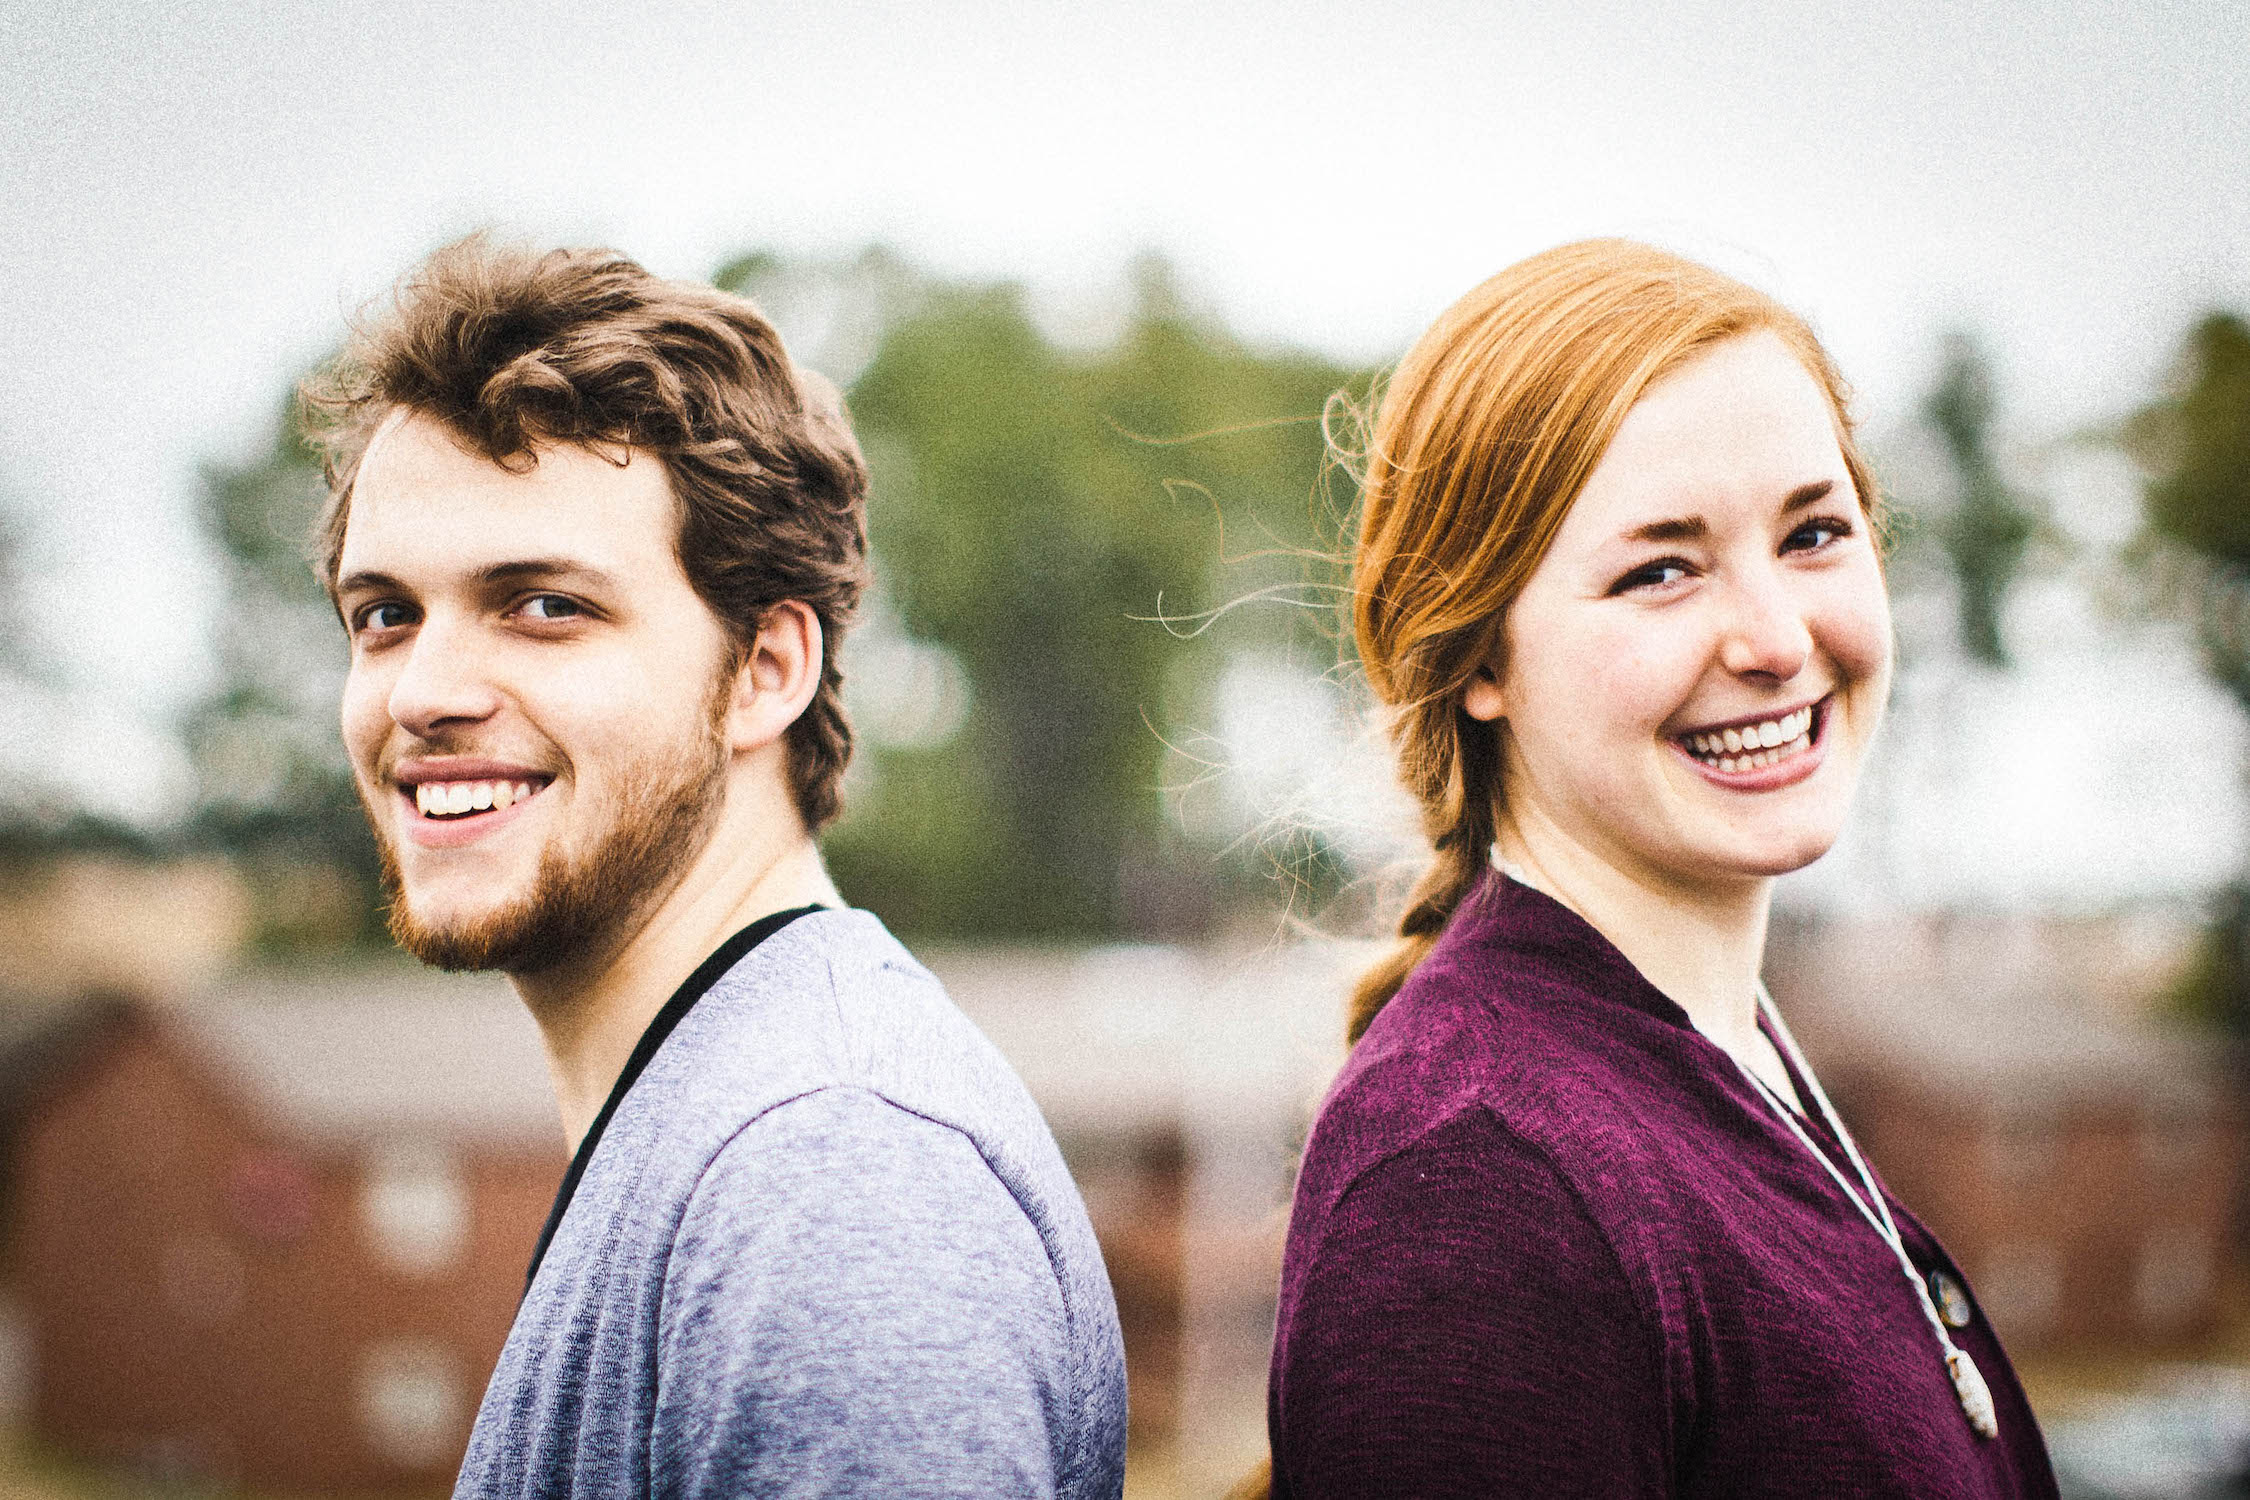 Lead vocalists Thomas Griffith and Kelsie Edgren